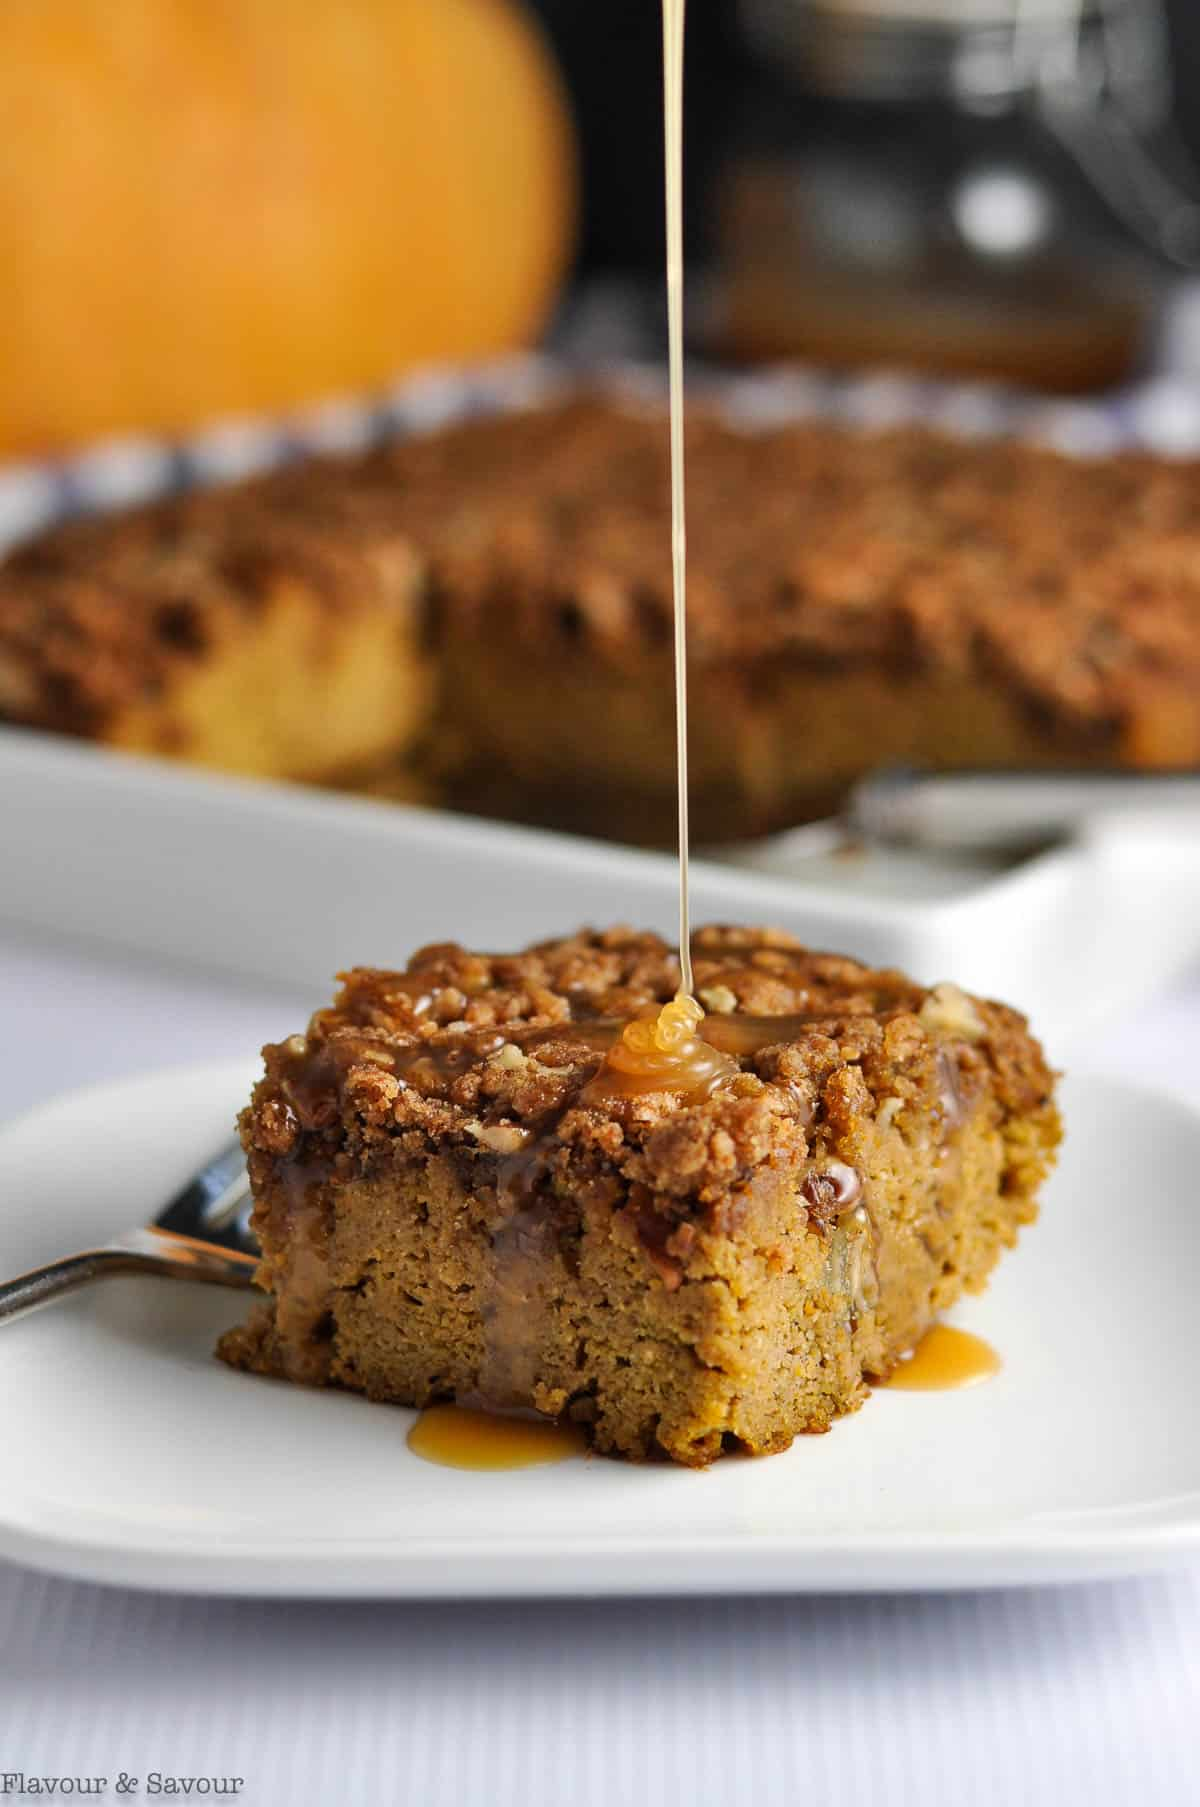 Drizzling caramel sauce on Pumpkin Pecan Coffee Cake